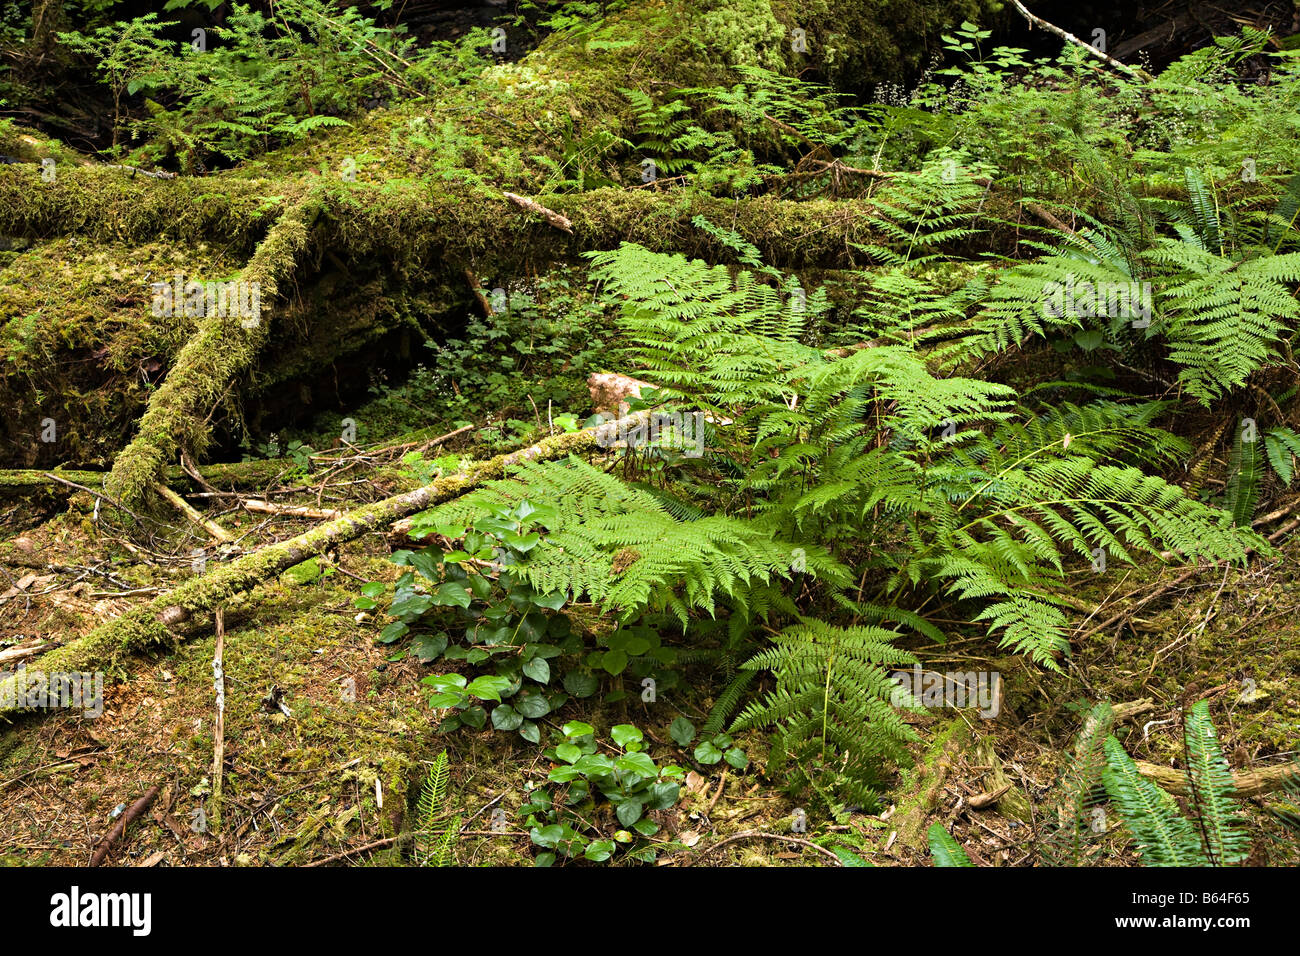 Ferns Polystichum Munitum And Plants Growing On Forest Floor Stock